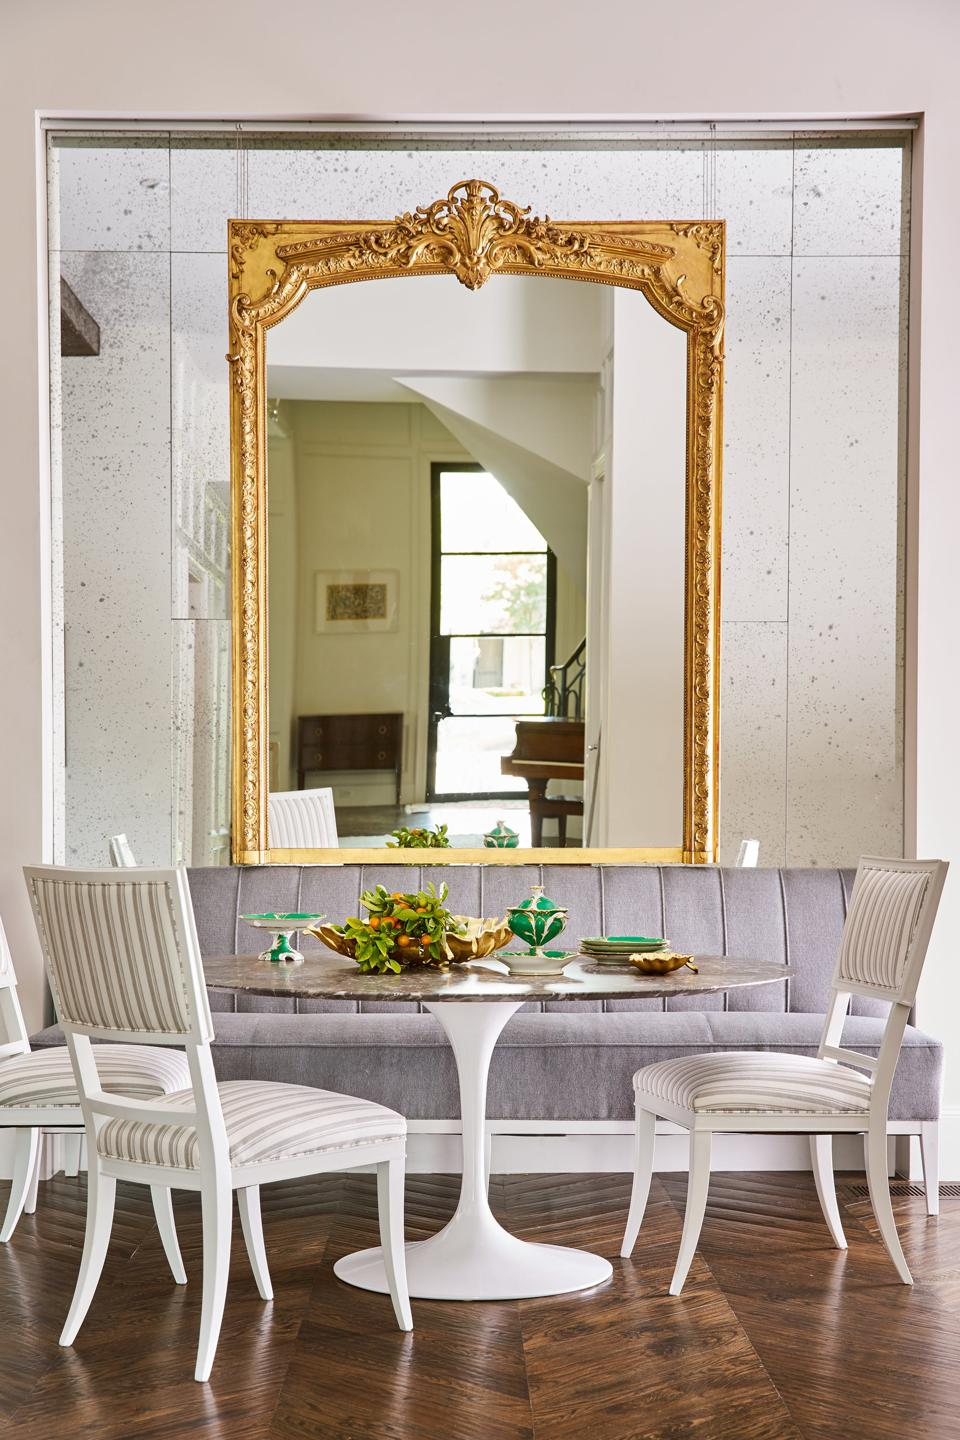 Bright dining room with mirrors